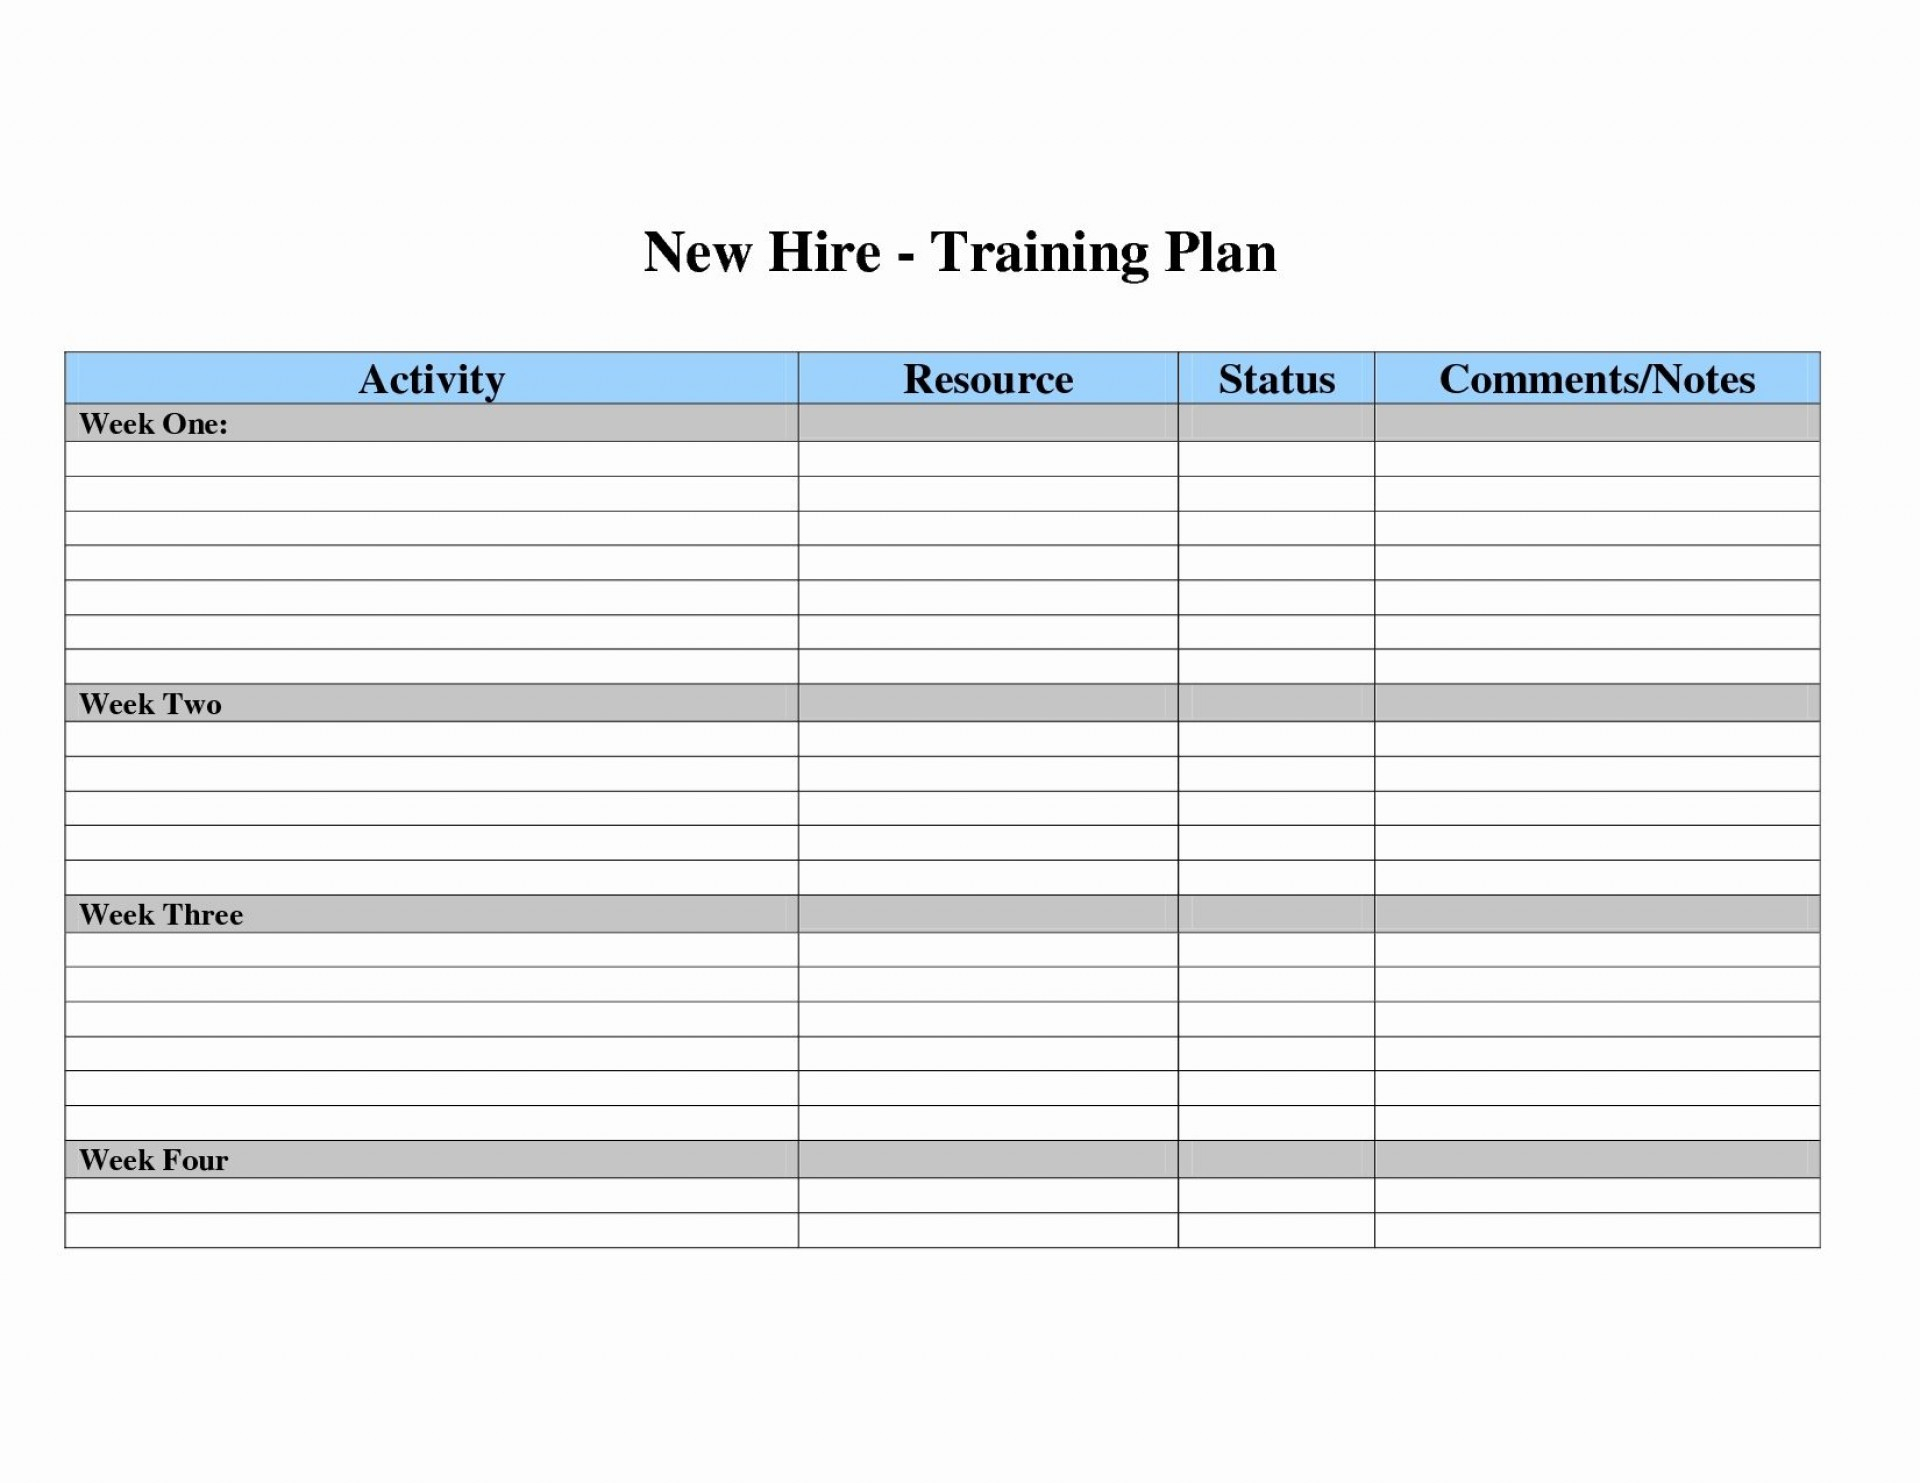 016 Annual Training Plan Template Excel Lgxmrt Ideas inside Blank Training Plan Template